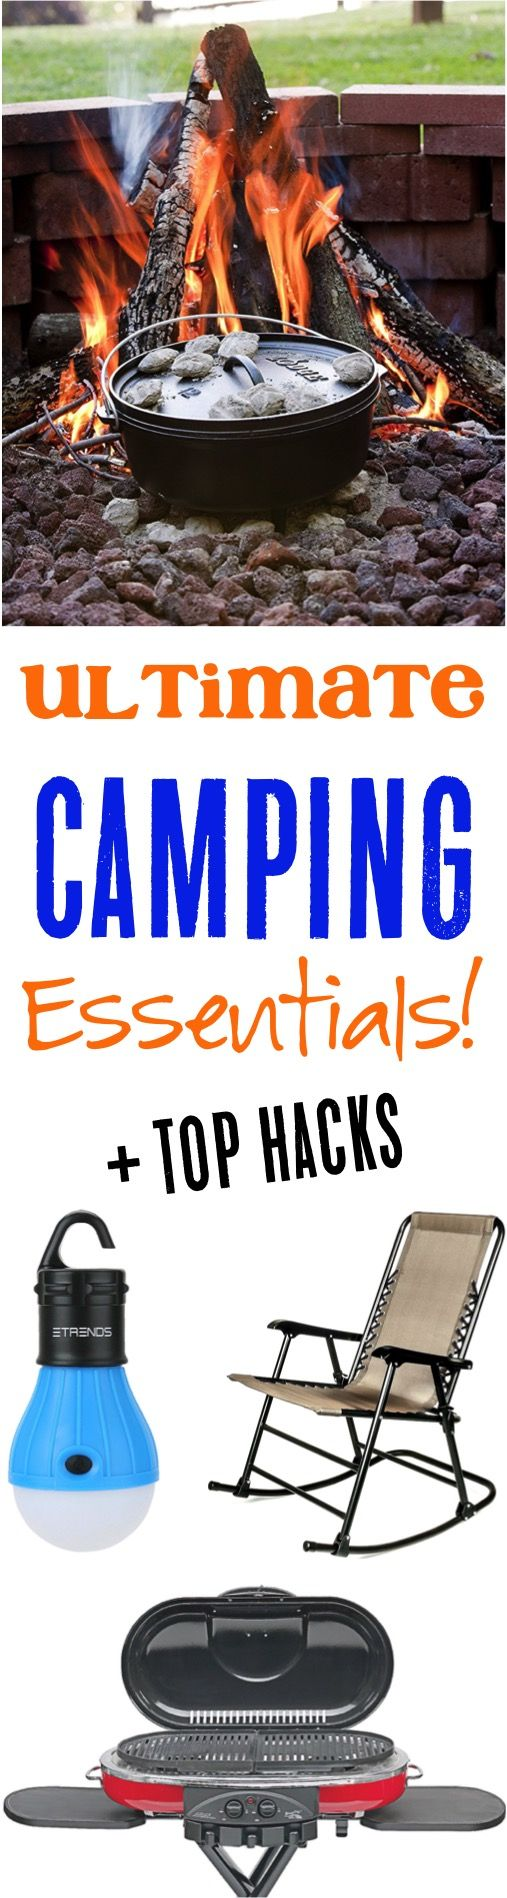 Ultimate Camping Checklist Top Gear And Hacks For Your Next Trip